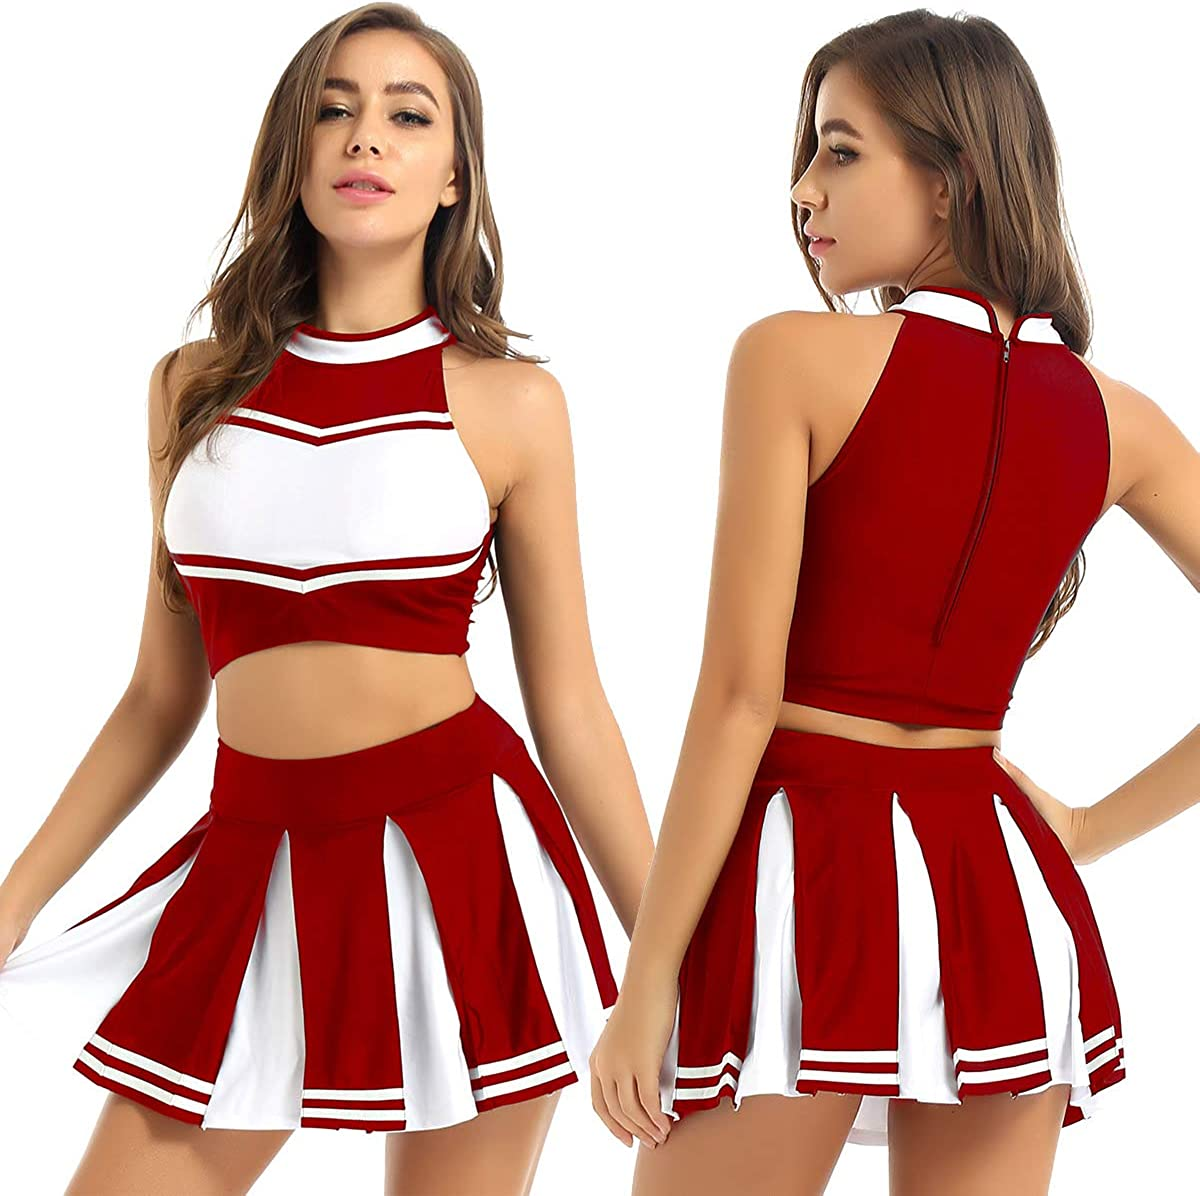 Mufeng Women's Girls School Musical Cosplay Cheer Party Spasm price Costume NEW before selling ☆